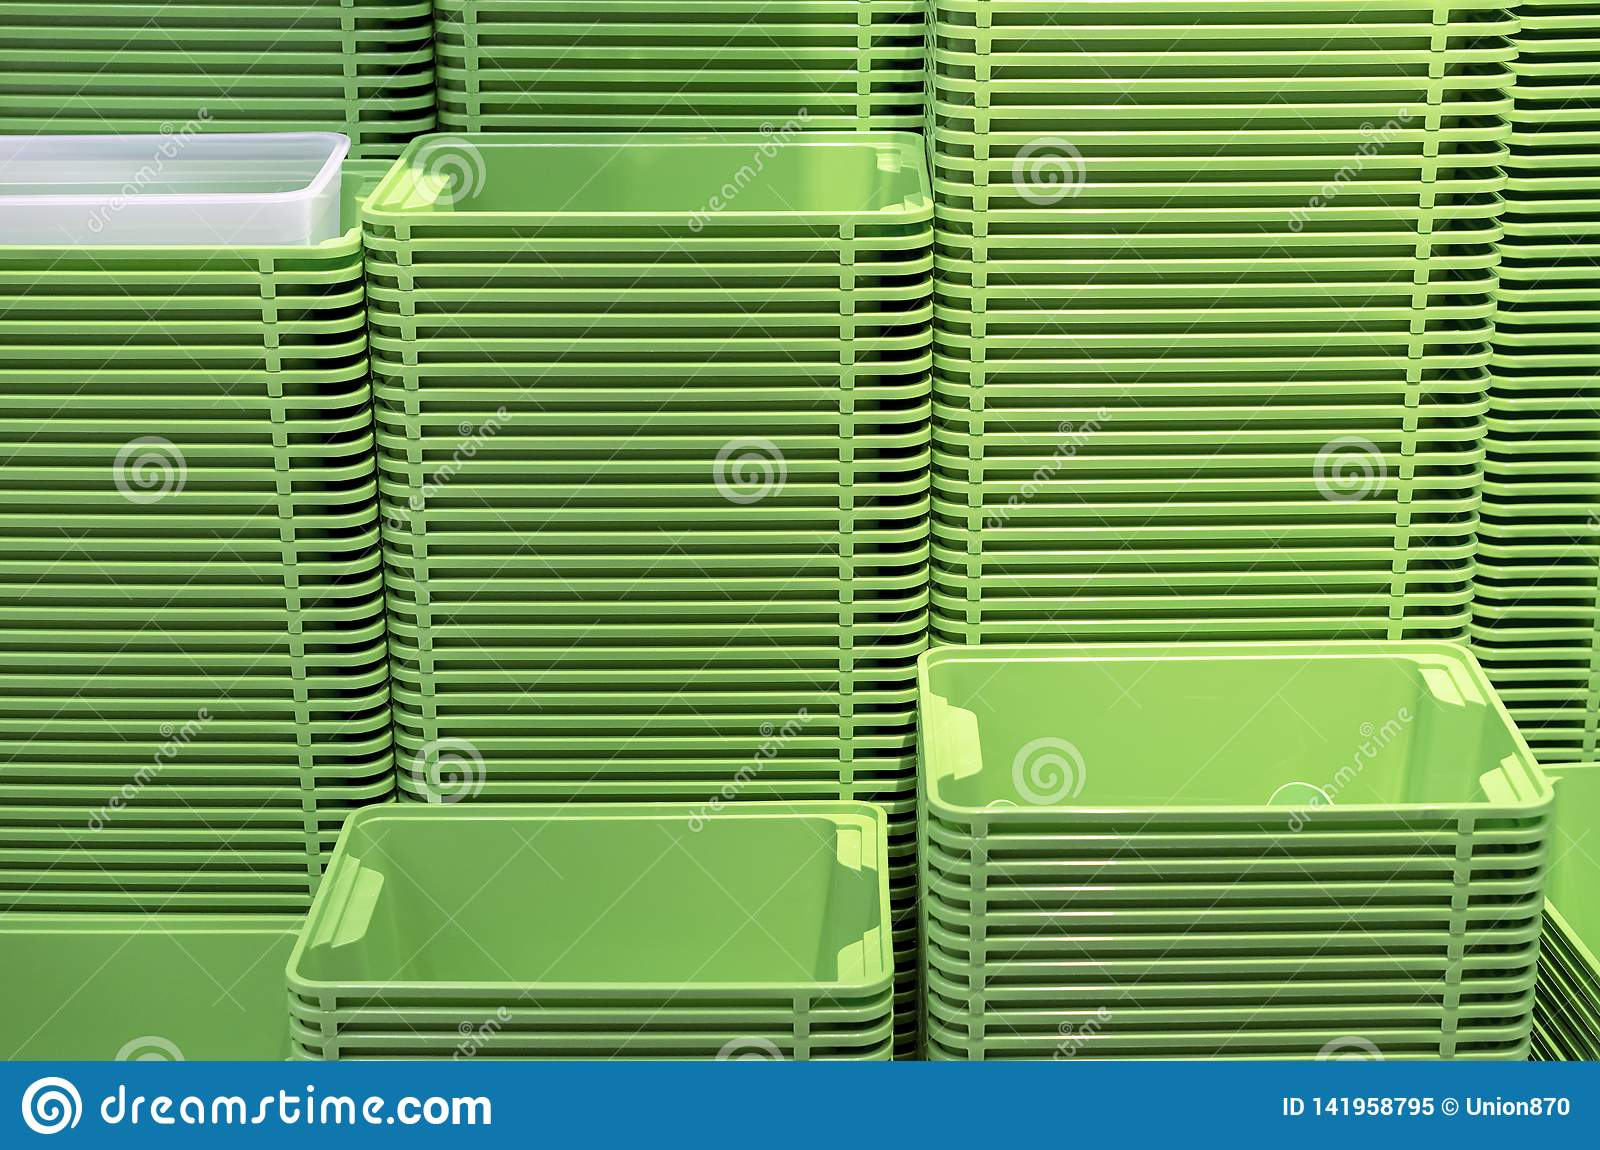 Plastic green containers stacked in several rows